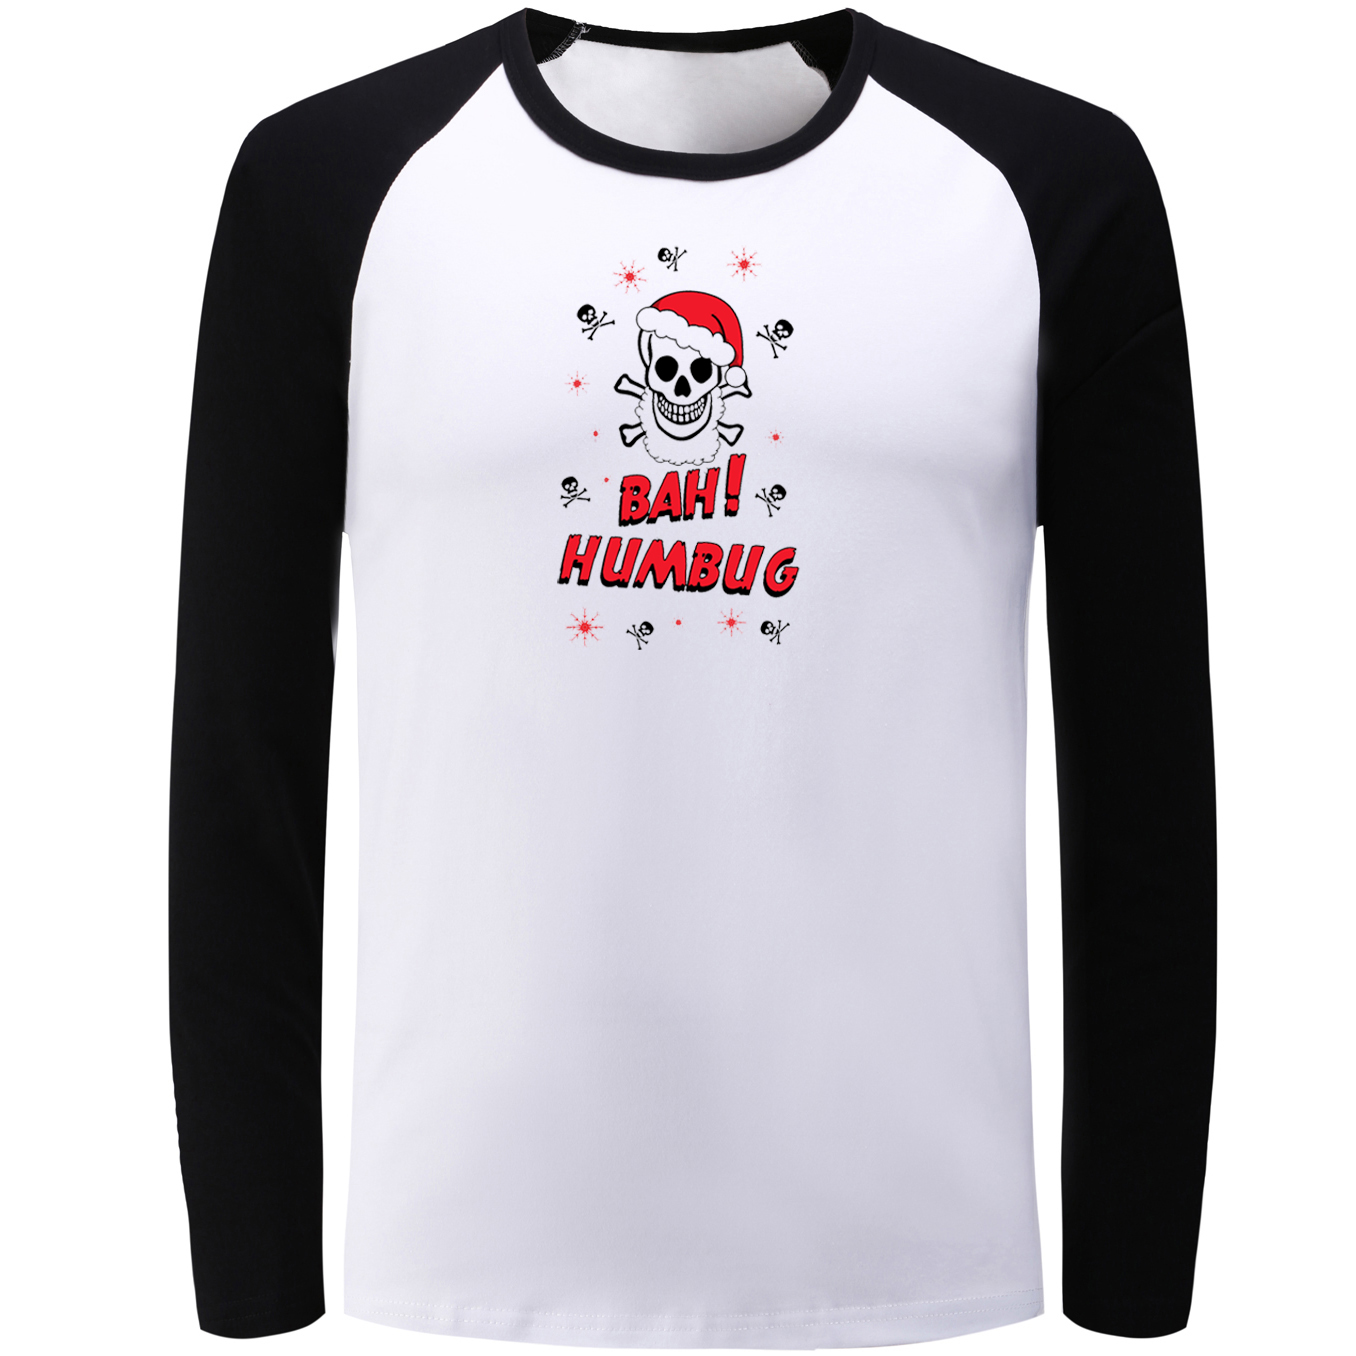 1d42dc4b IDzn Raglan Long Sleeve T-shirt Bah! Humbug Skull Christmas Graphic T Shirt  Men Women Boy Autumn Winter Street Style Tee Tops